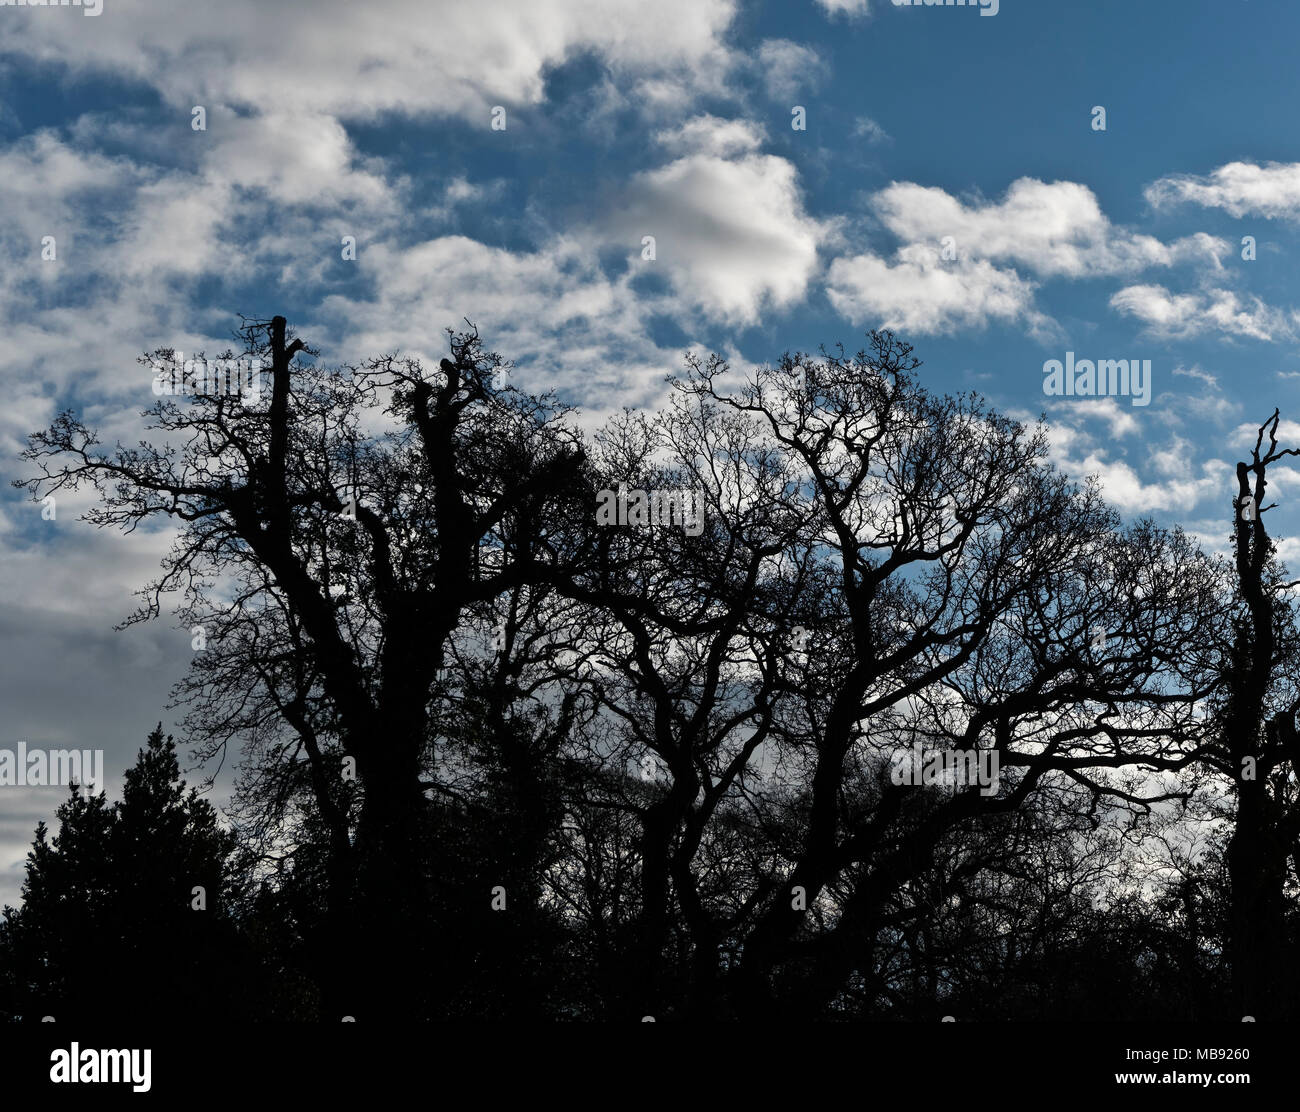 A silhouetted row of ancient oak trees in winter with bare branches - Stock Image